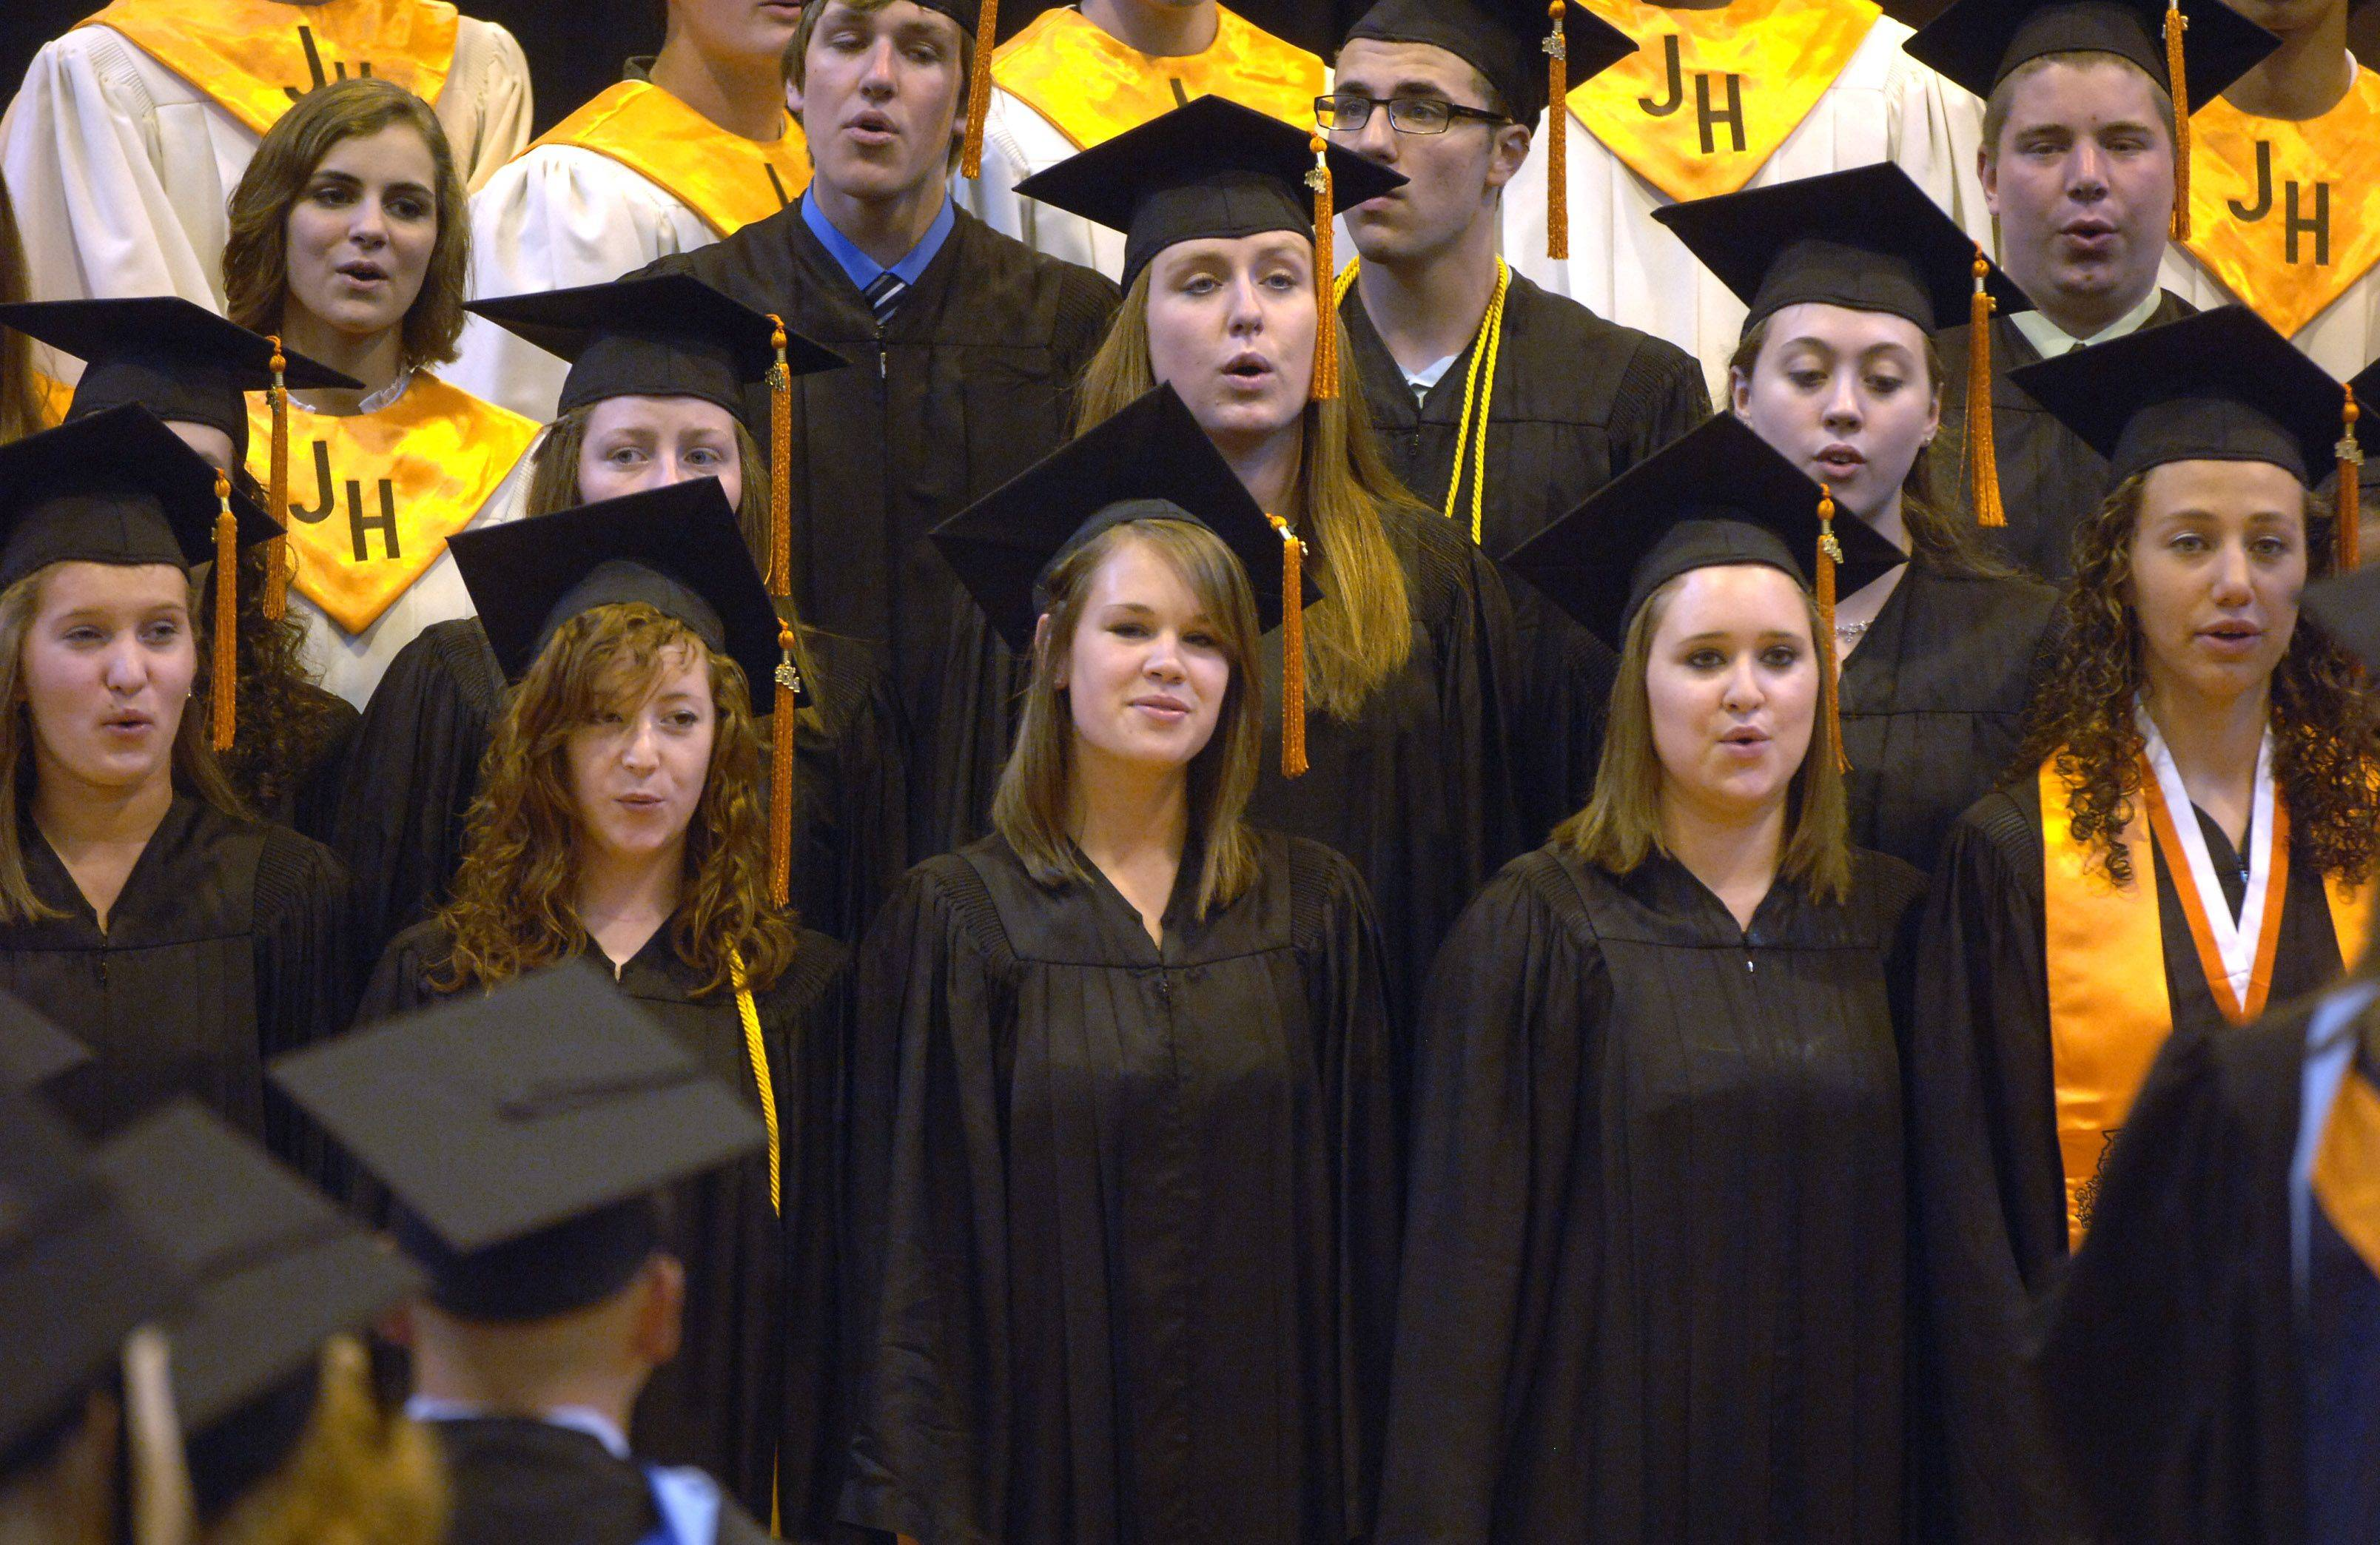 Images from the Hersey High School graduation on Sunday, June 5th.